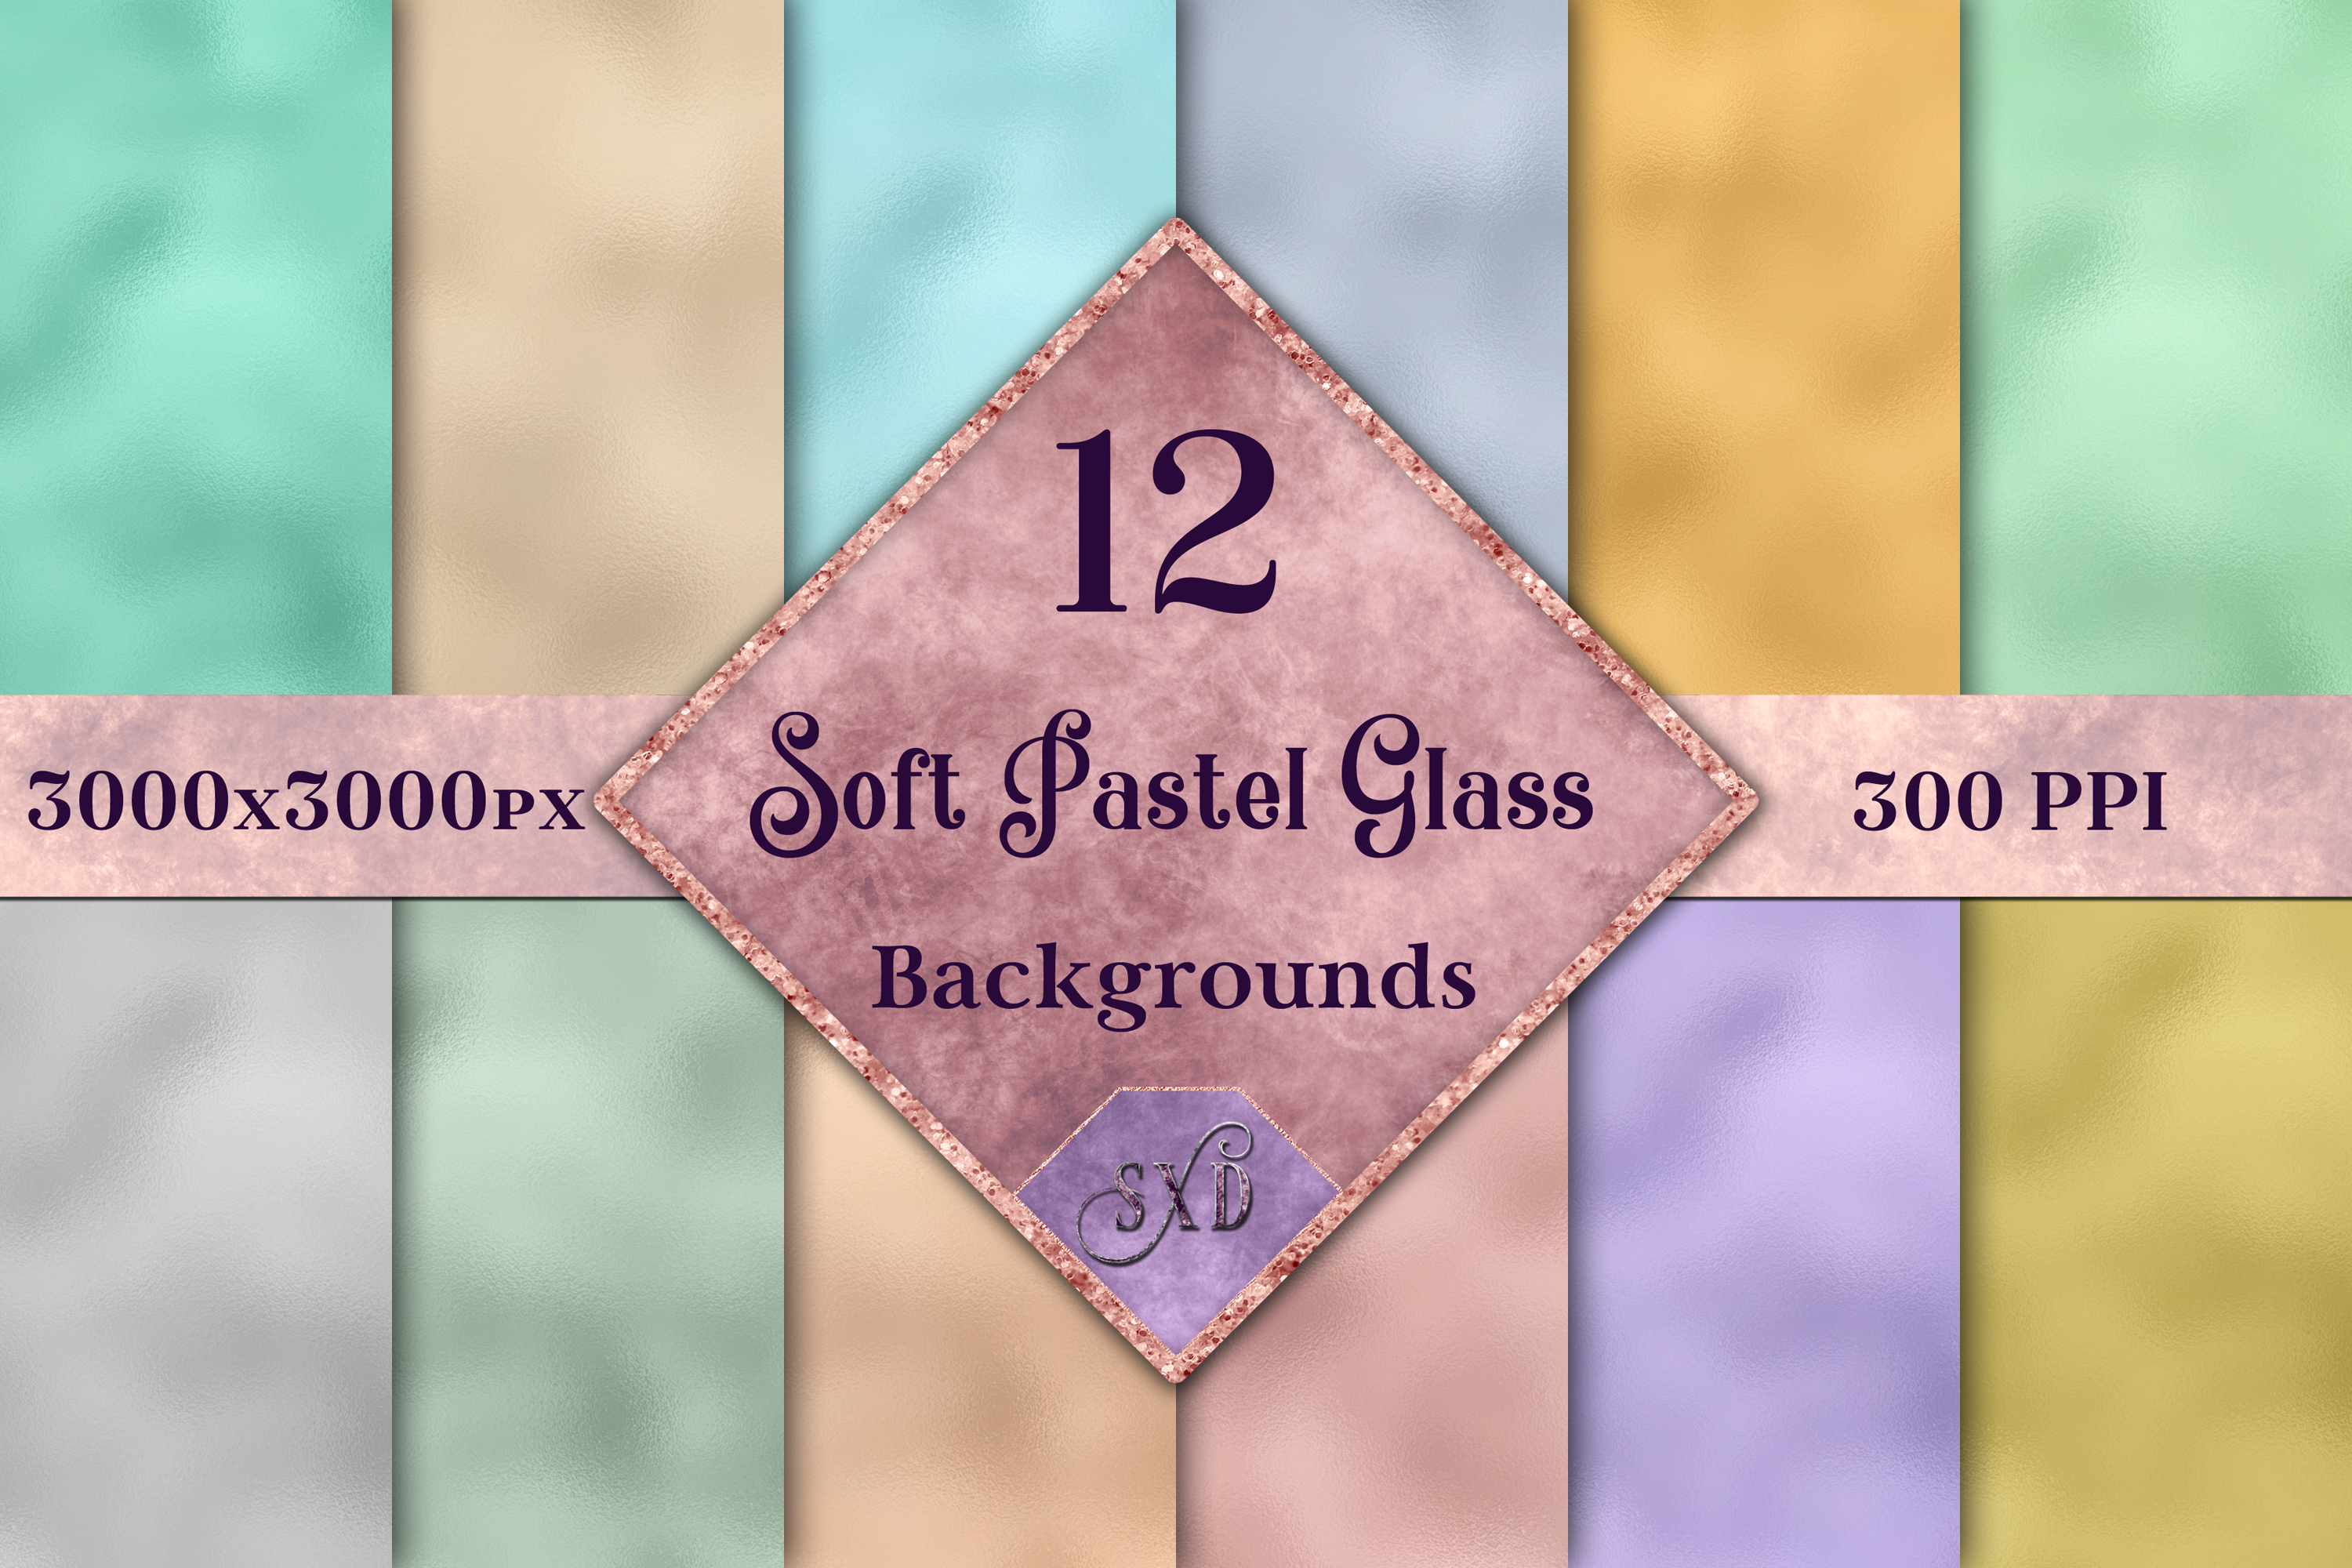 Soft Pastel Glass Backgrounds - 12 Image Textures Set example image 1